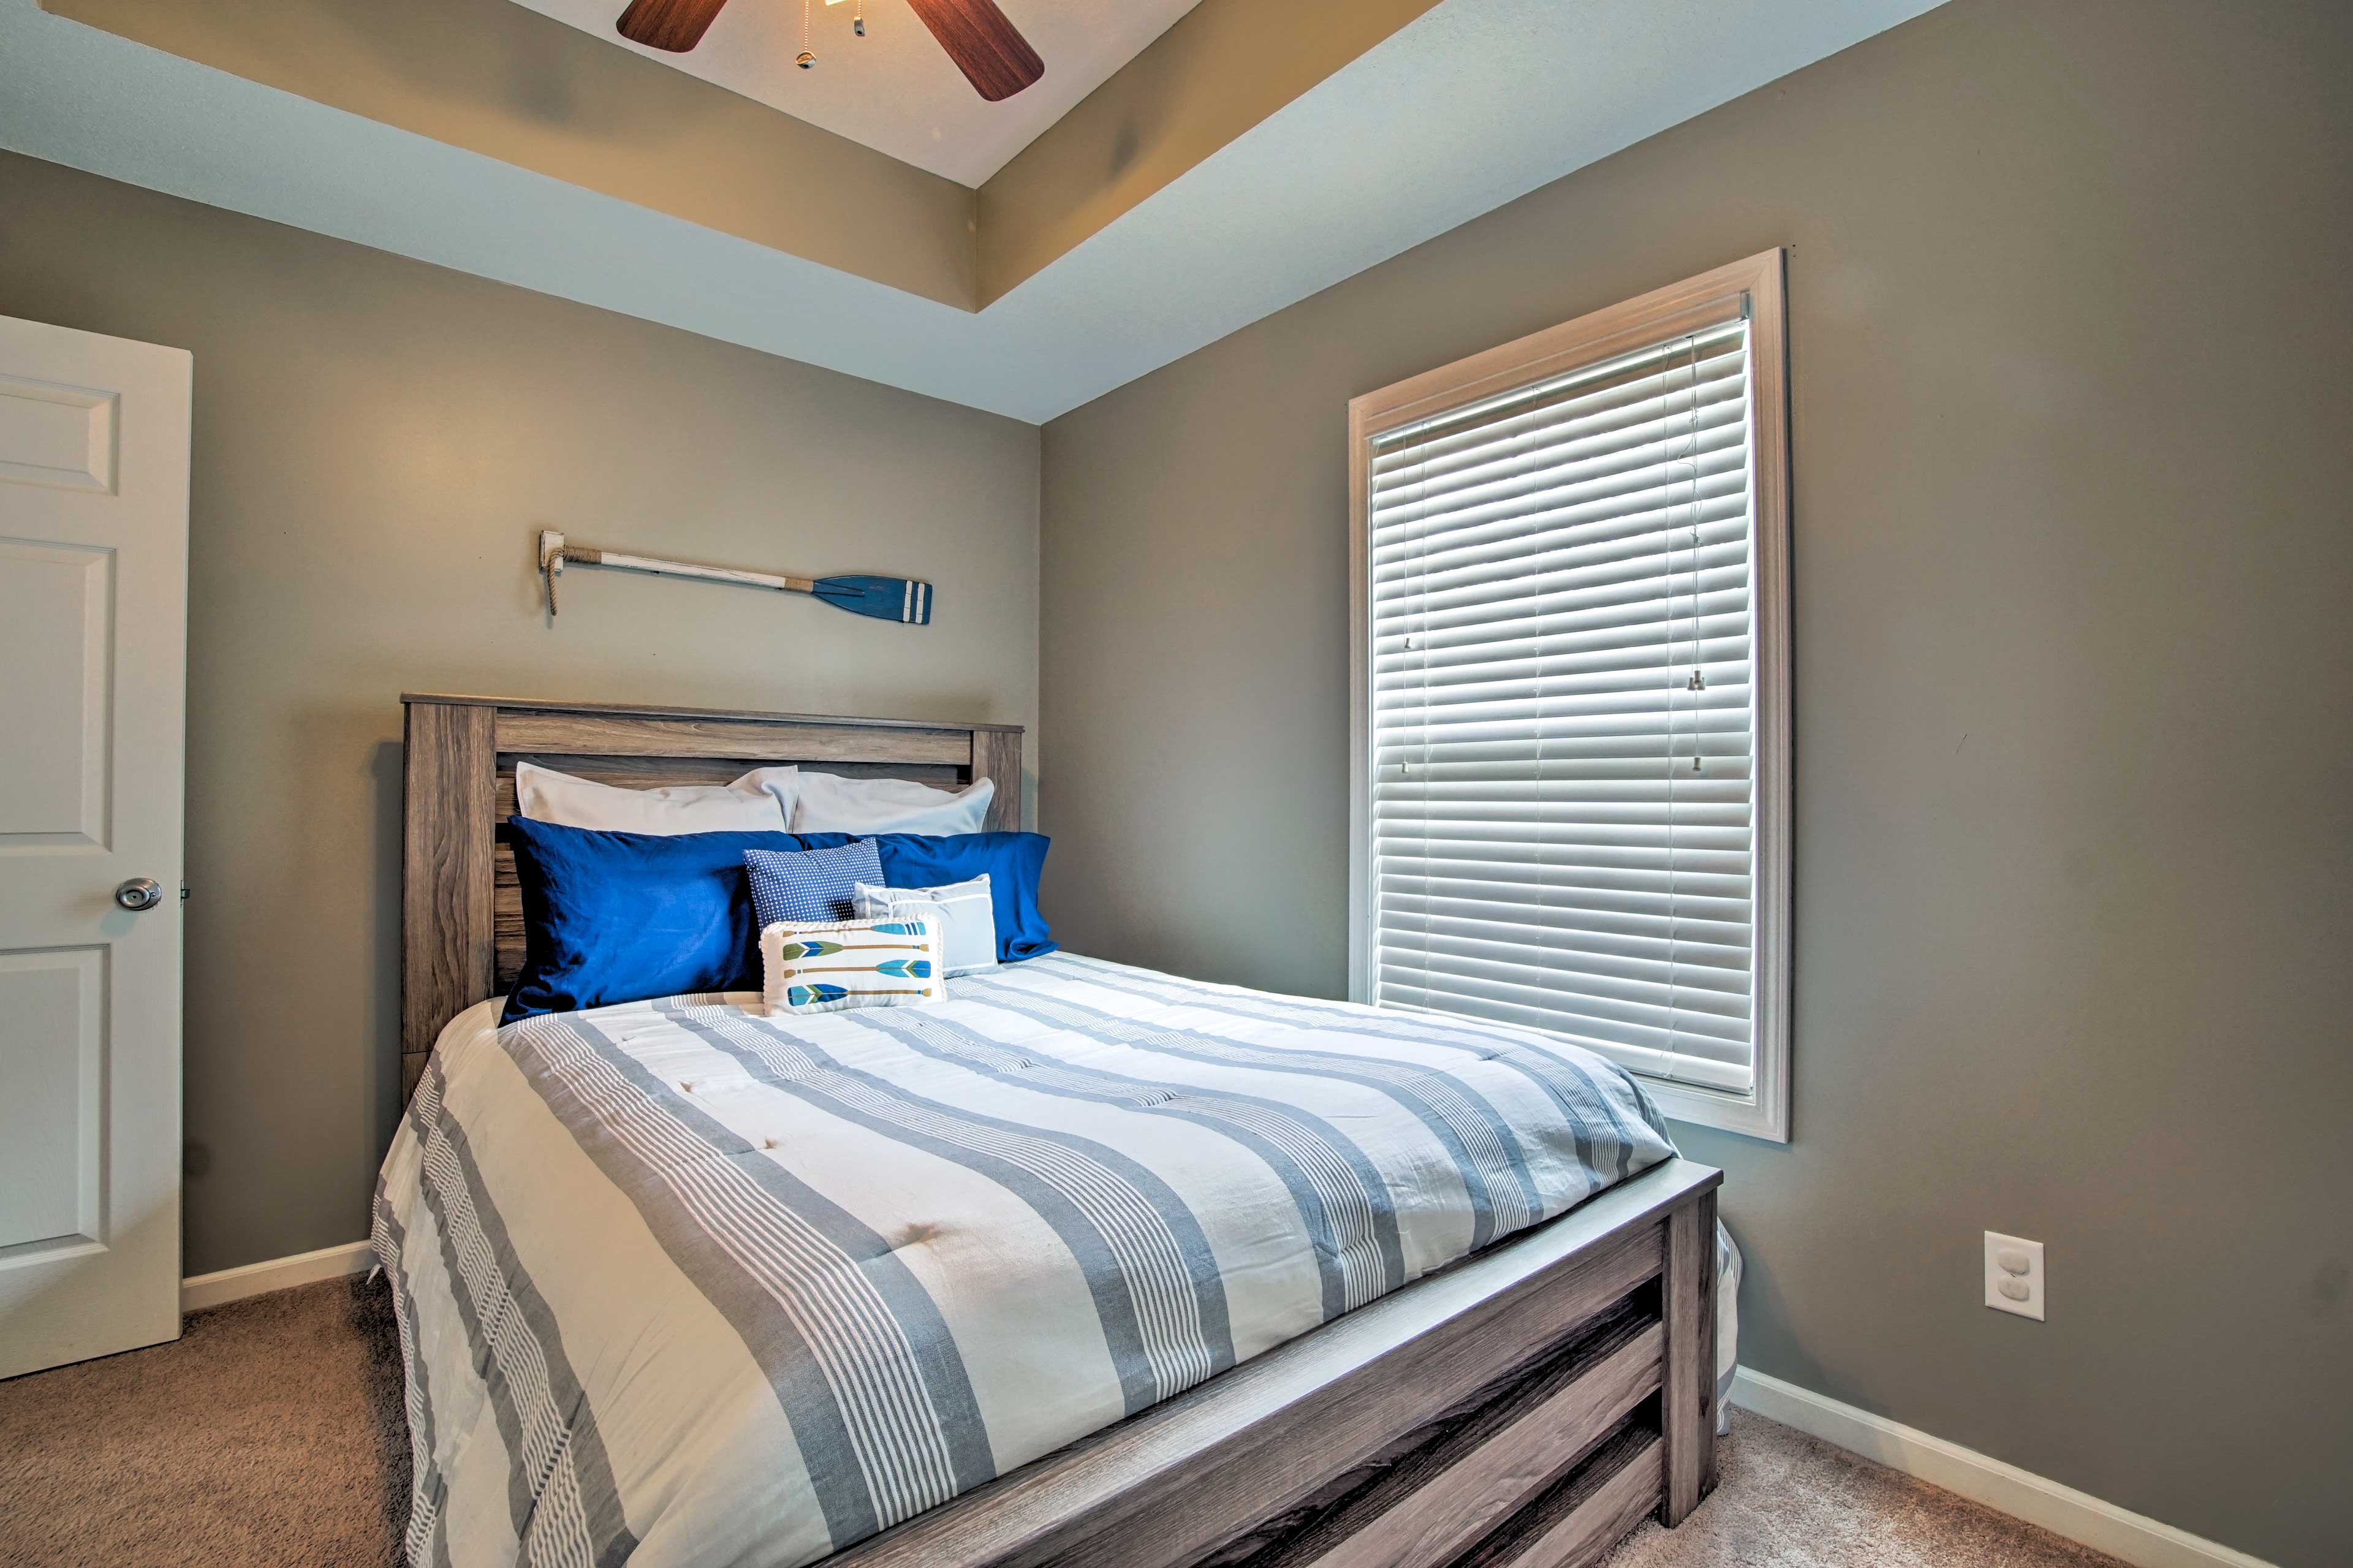 Retreat to one of 4 bedrooms for a peaceful slumber.